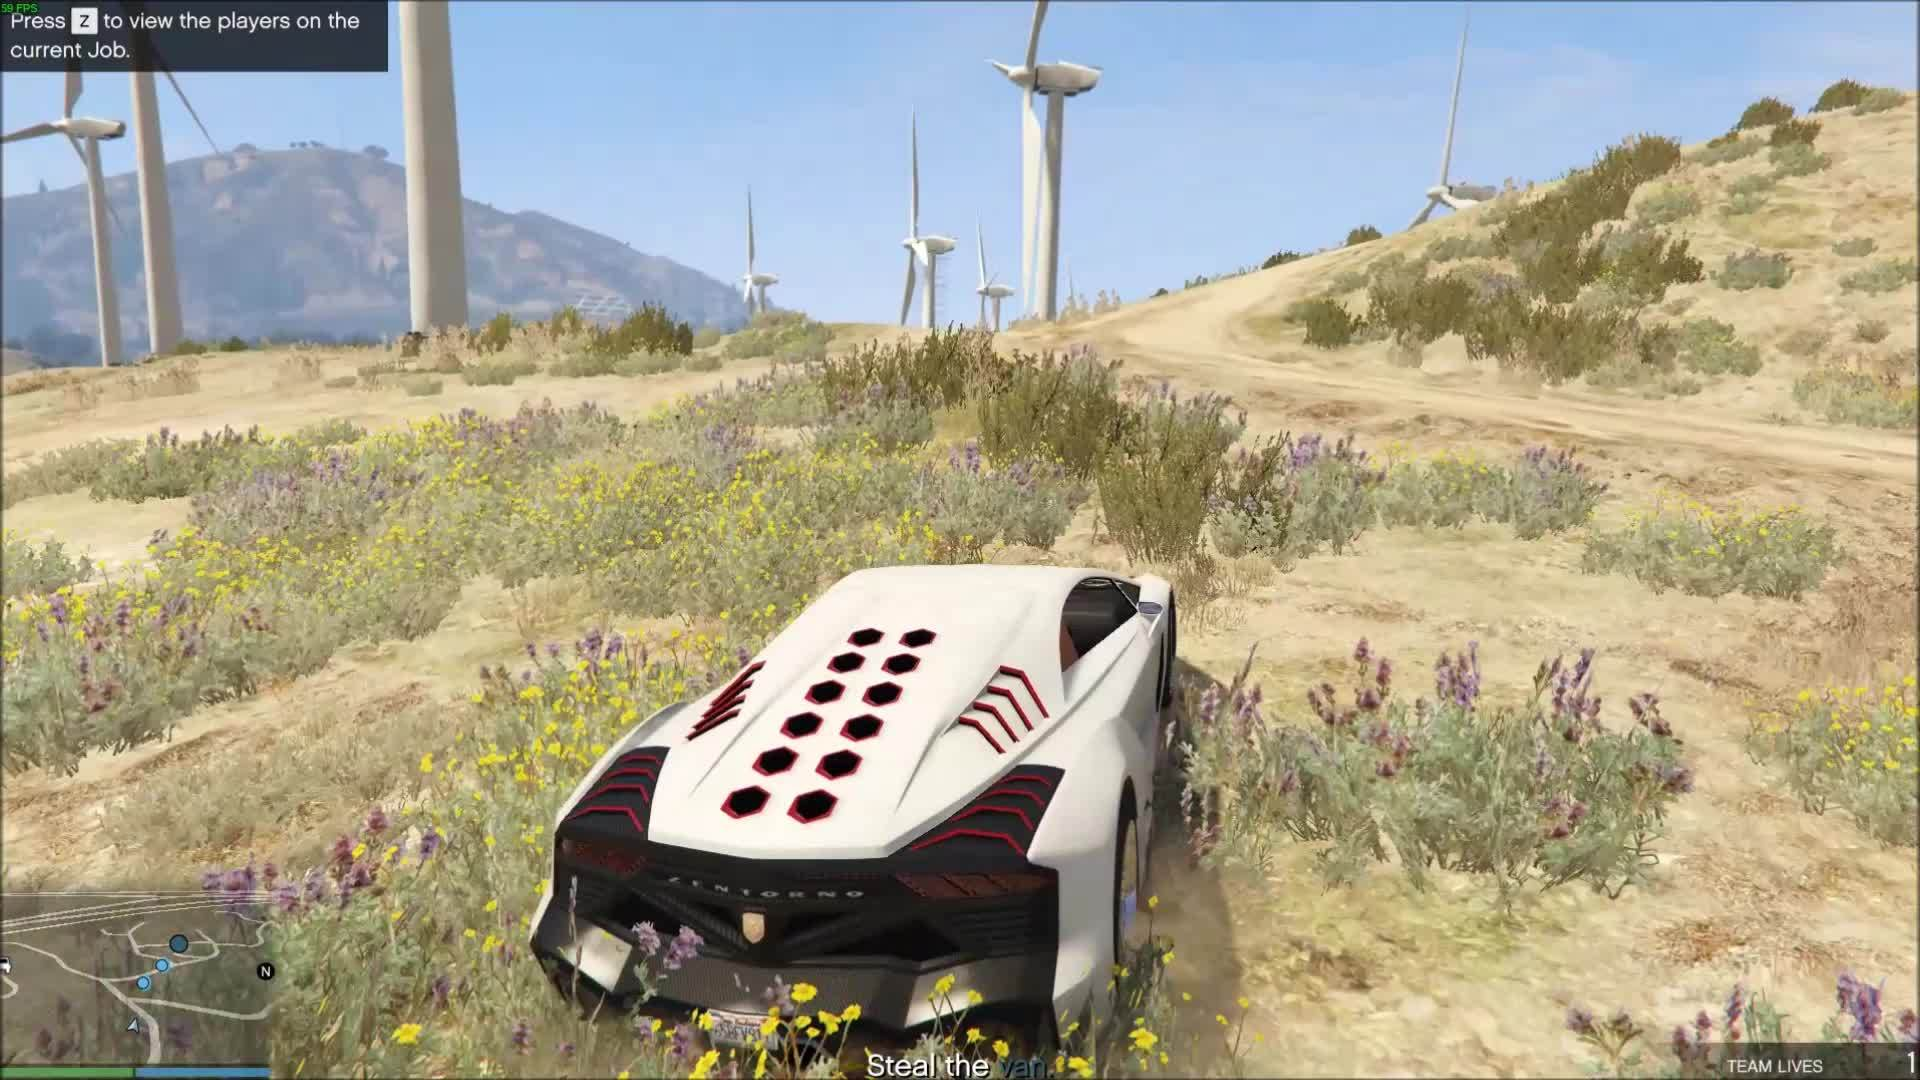 60fpsgaminggifs, Dropping my friend off in style. GIFs